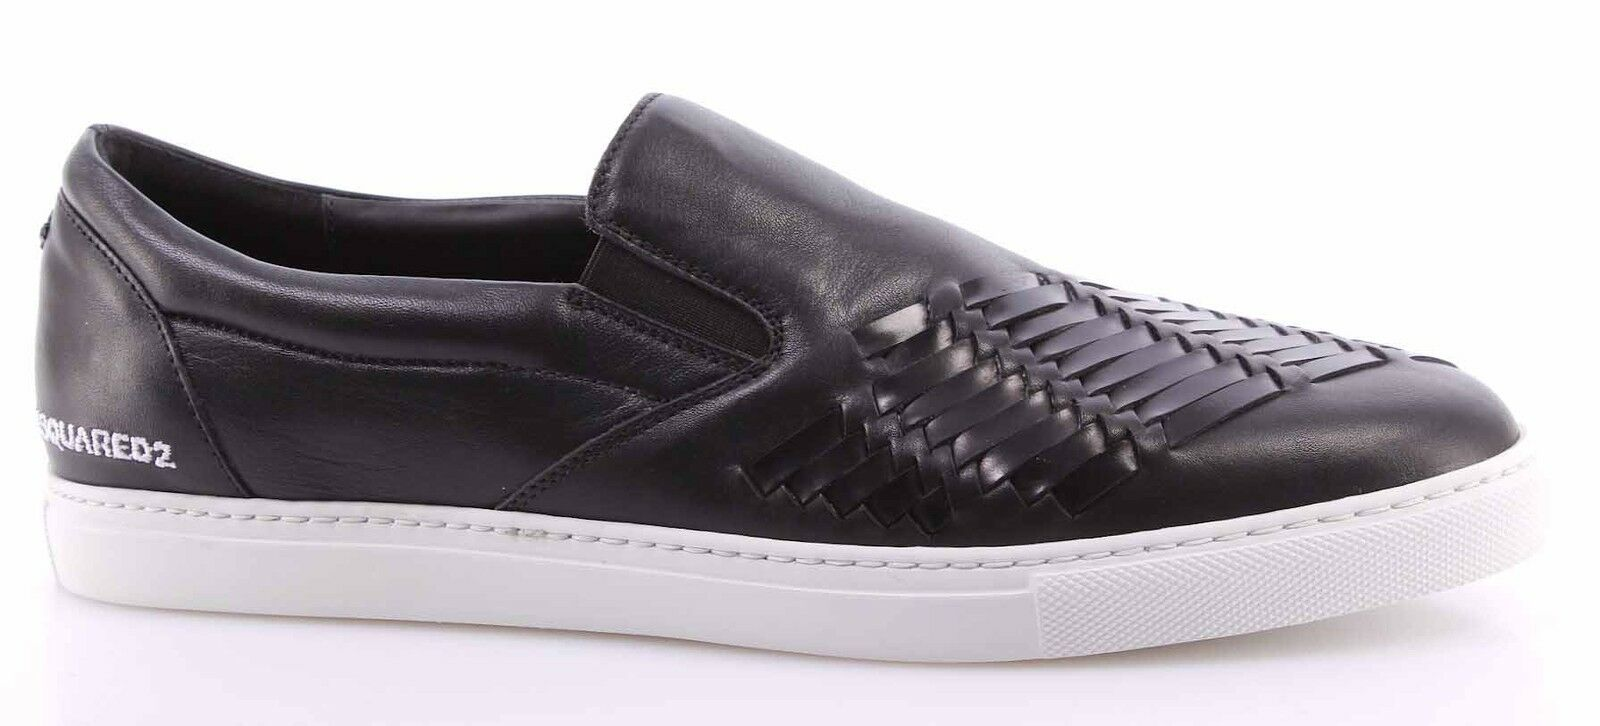 Herren Sneakers Schuhe DSQUARED Slip On Panama Vitello Sport Nero Leder Schwarz